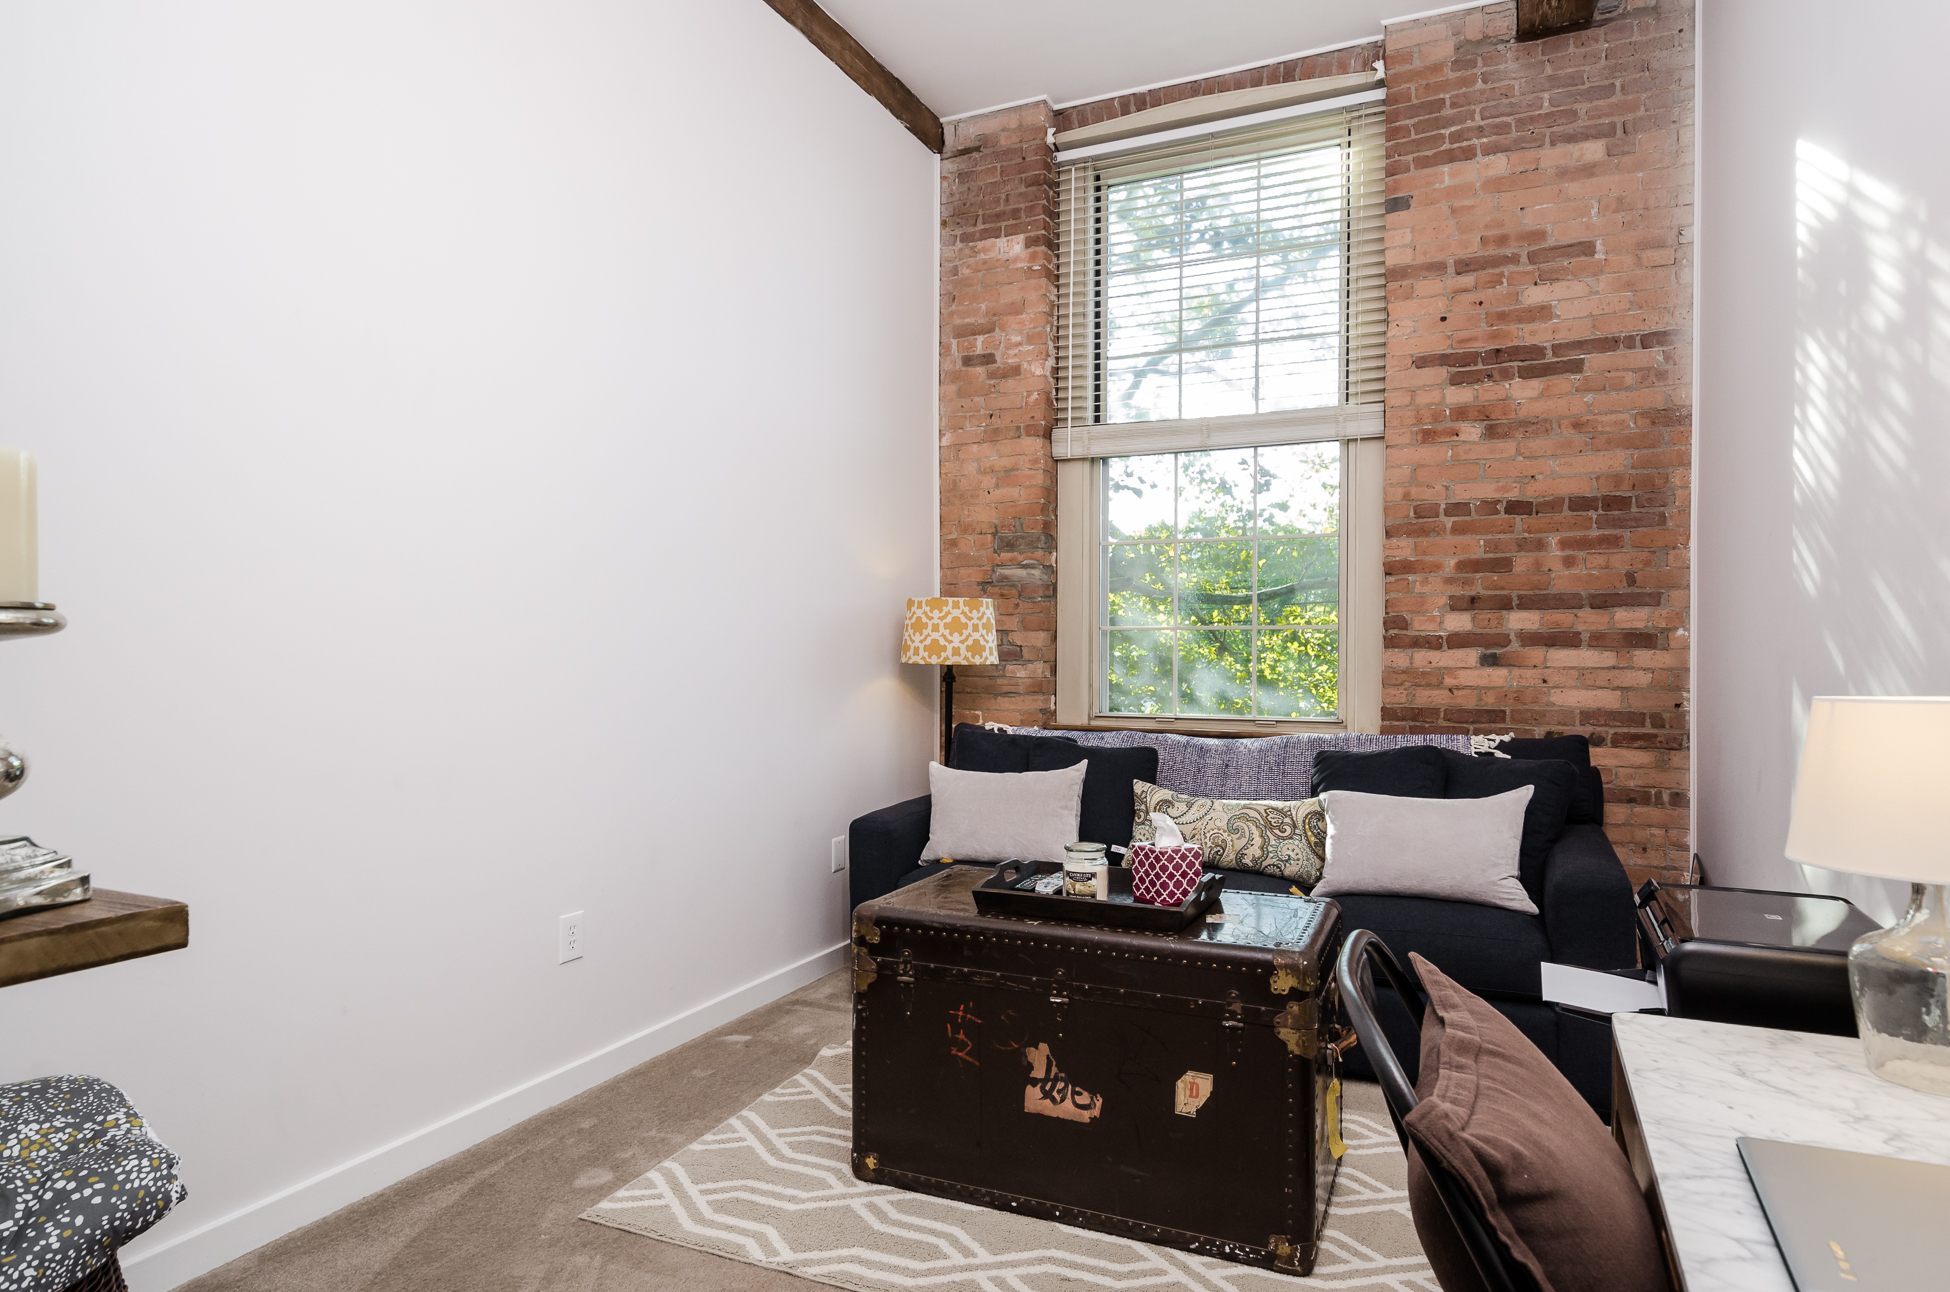 Additional photo for property listing at Chic, Loft-Style Living at The Mill - Milltown Boro 40 Washington Avenue Unit 16 Milltown, New Jersey 08850 États-Unis